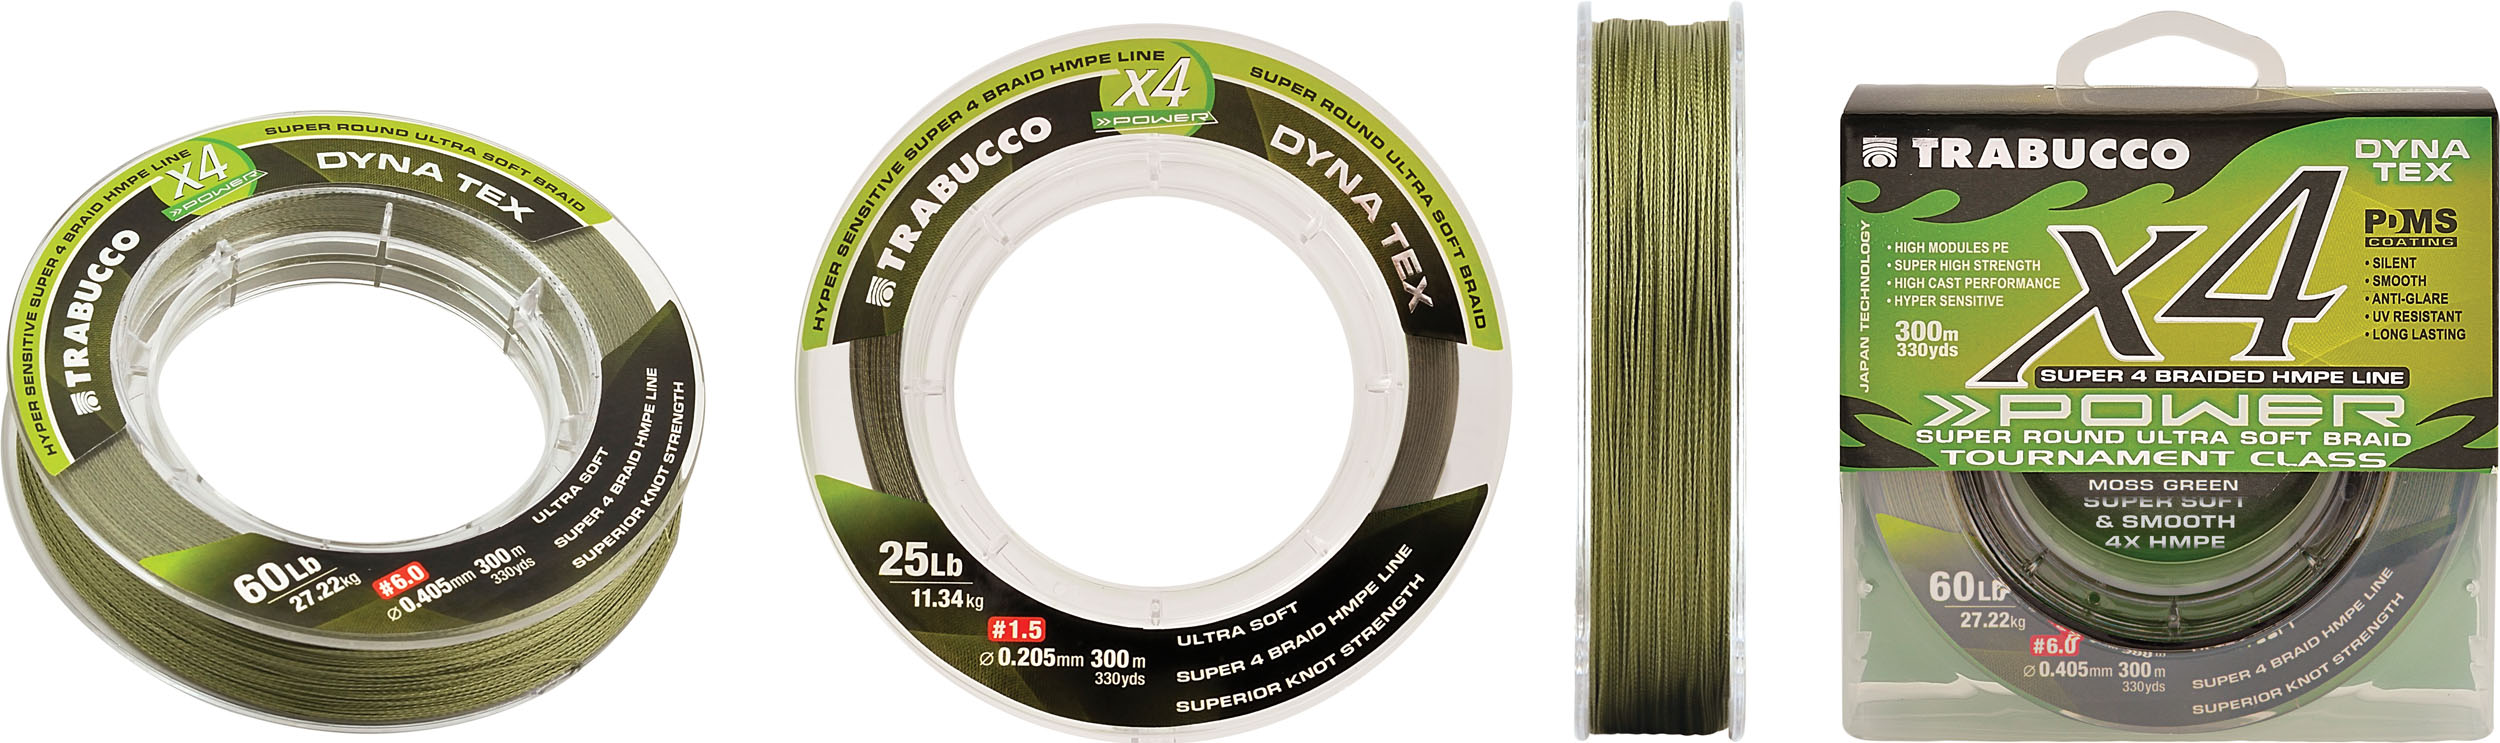 Trabucco Dyna Tex X4 Power 150m 0.285mm MOSS GREEN